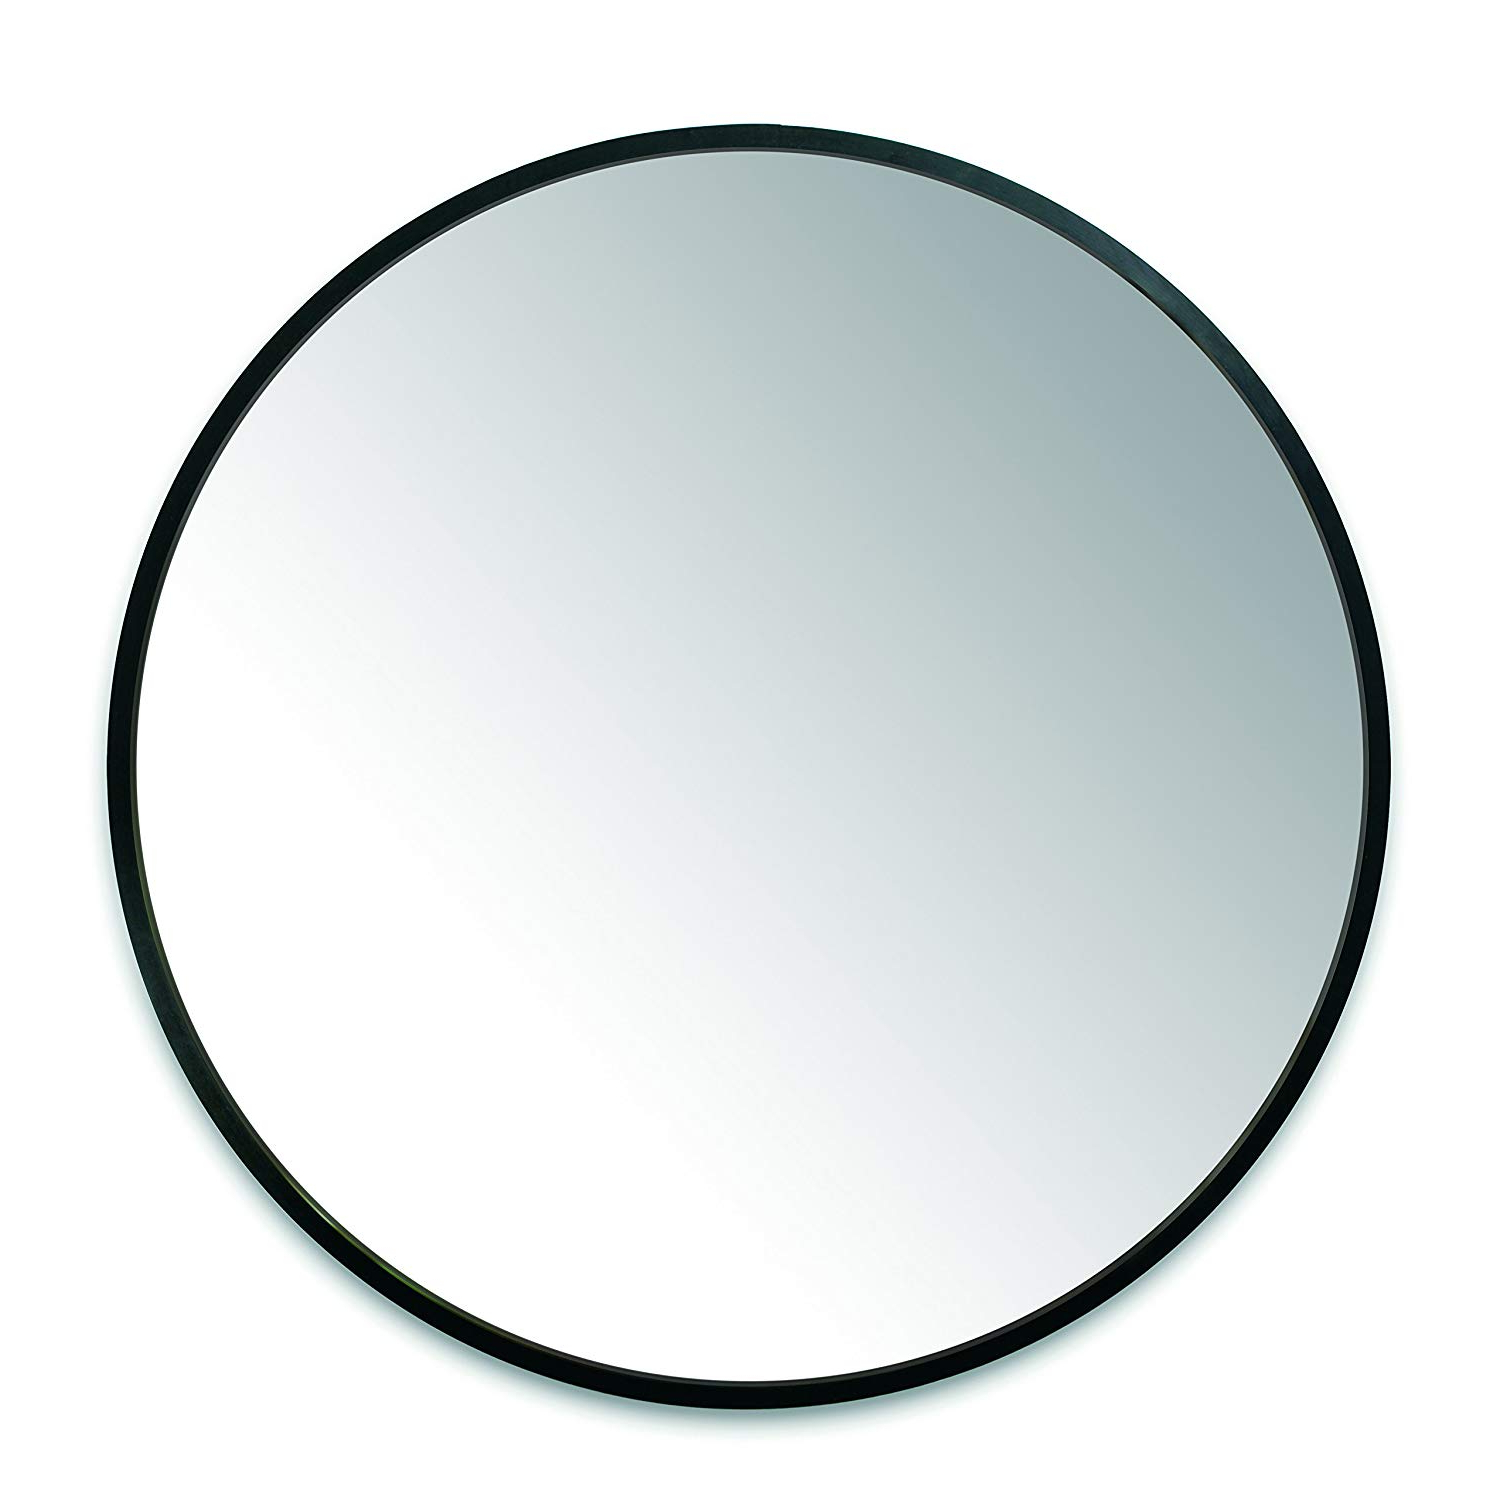 Popular Umbra Hub Wall Mirror With Rubber Frame – 37 Inch Round Wall Mirror For Entryways, Washrooms, Living Rooms And More, Doubles As Modern Wall Art, Black Throughout Round Black Wall Mirrors (View 9 of 20)